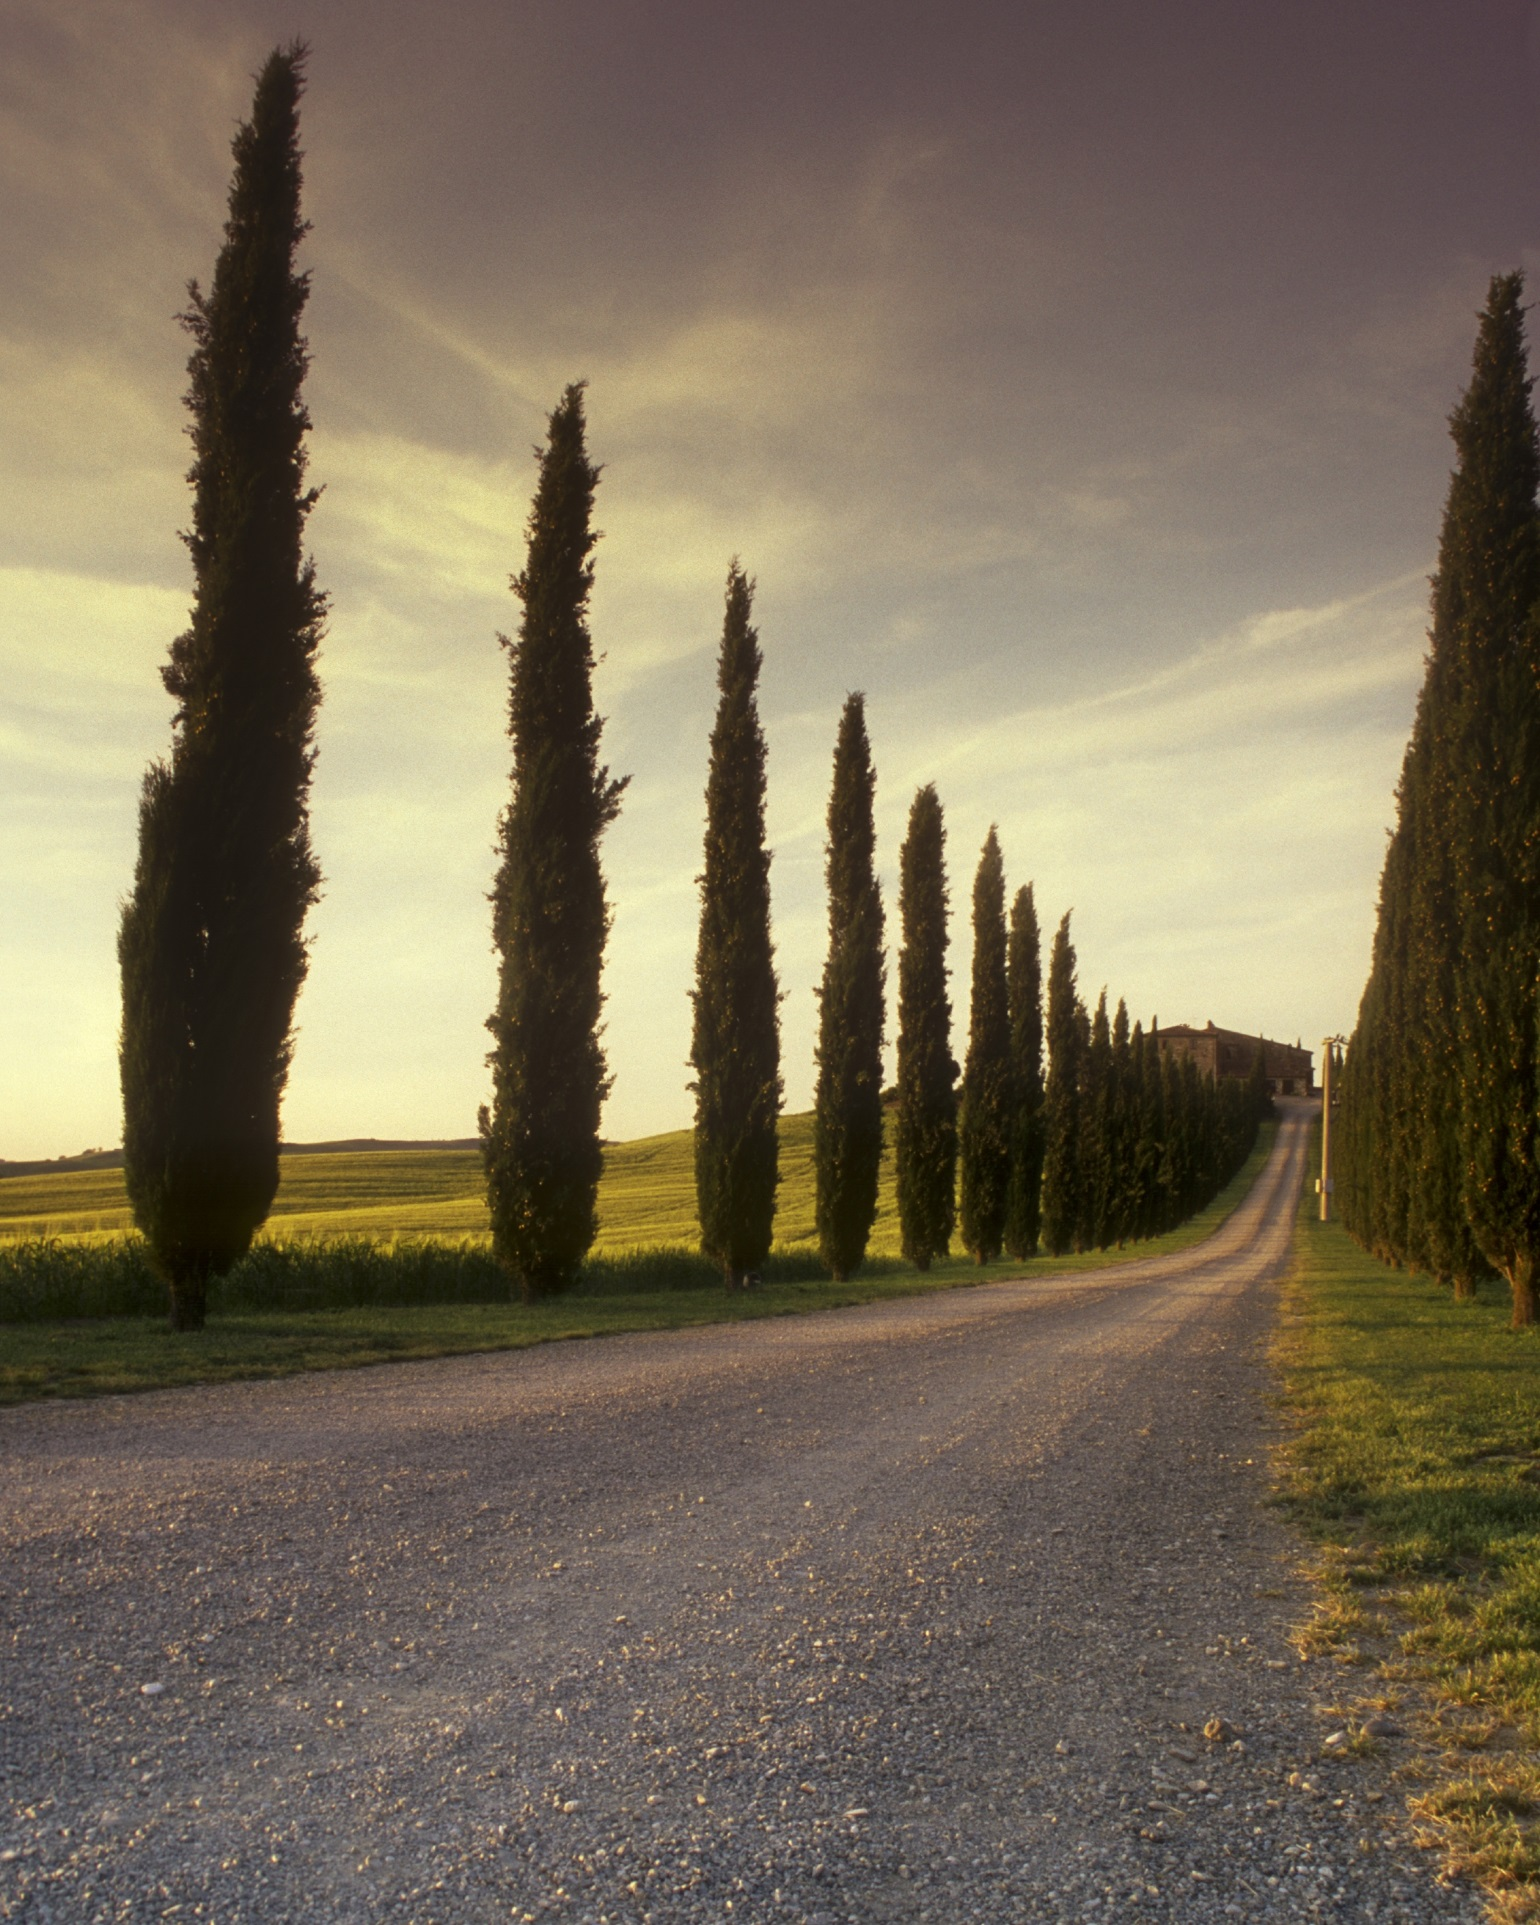 A picture of a winding road and trees